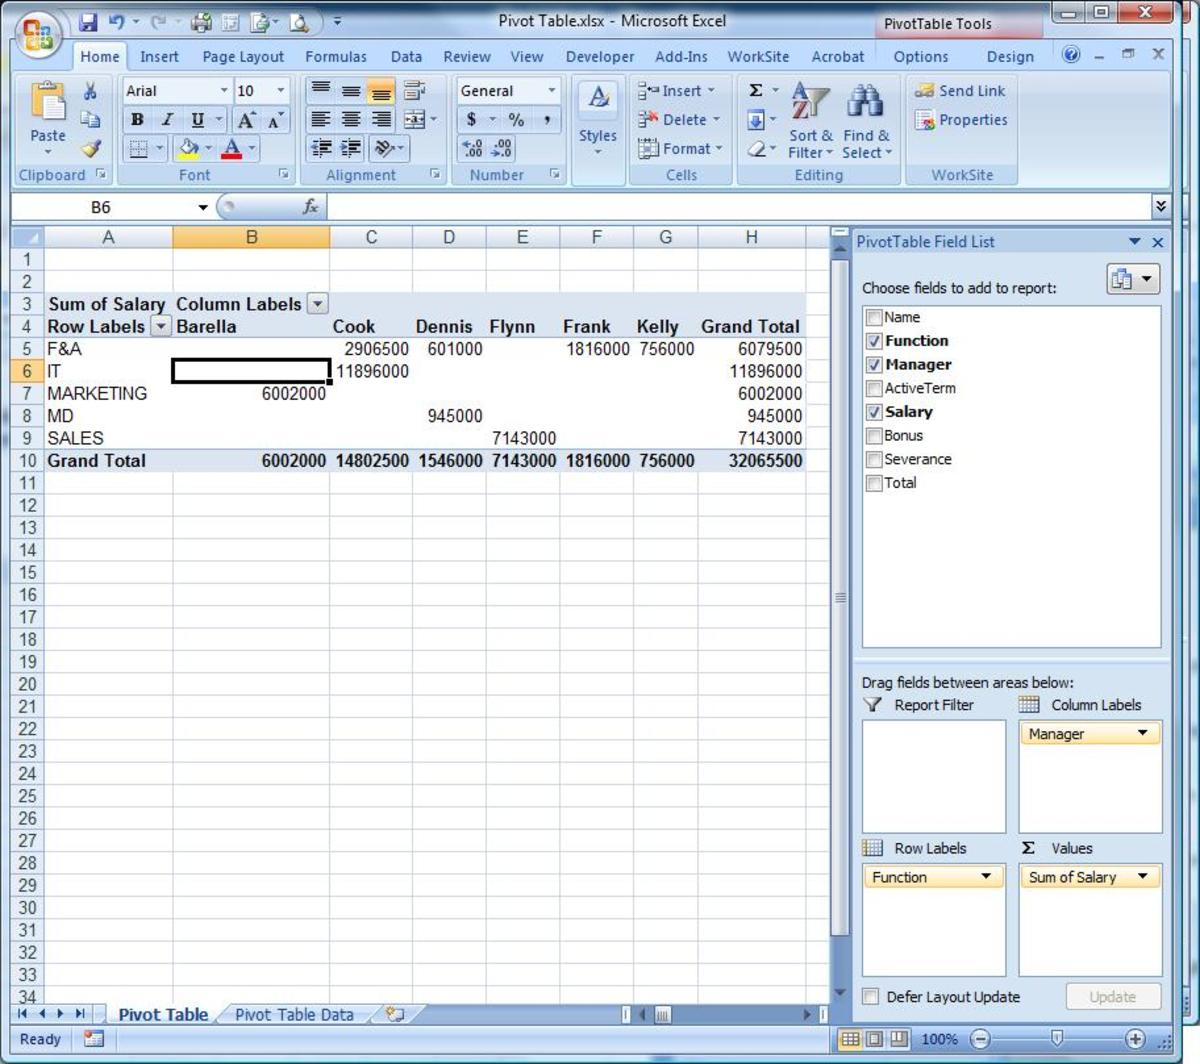 The template for the Pivot Table with the field list items pulled from your data.